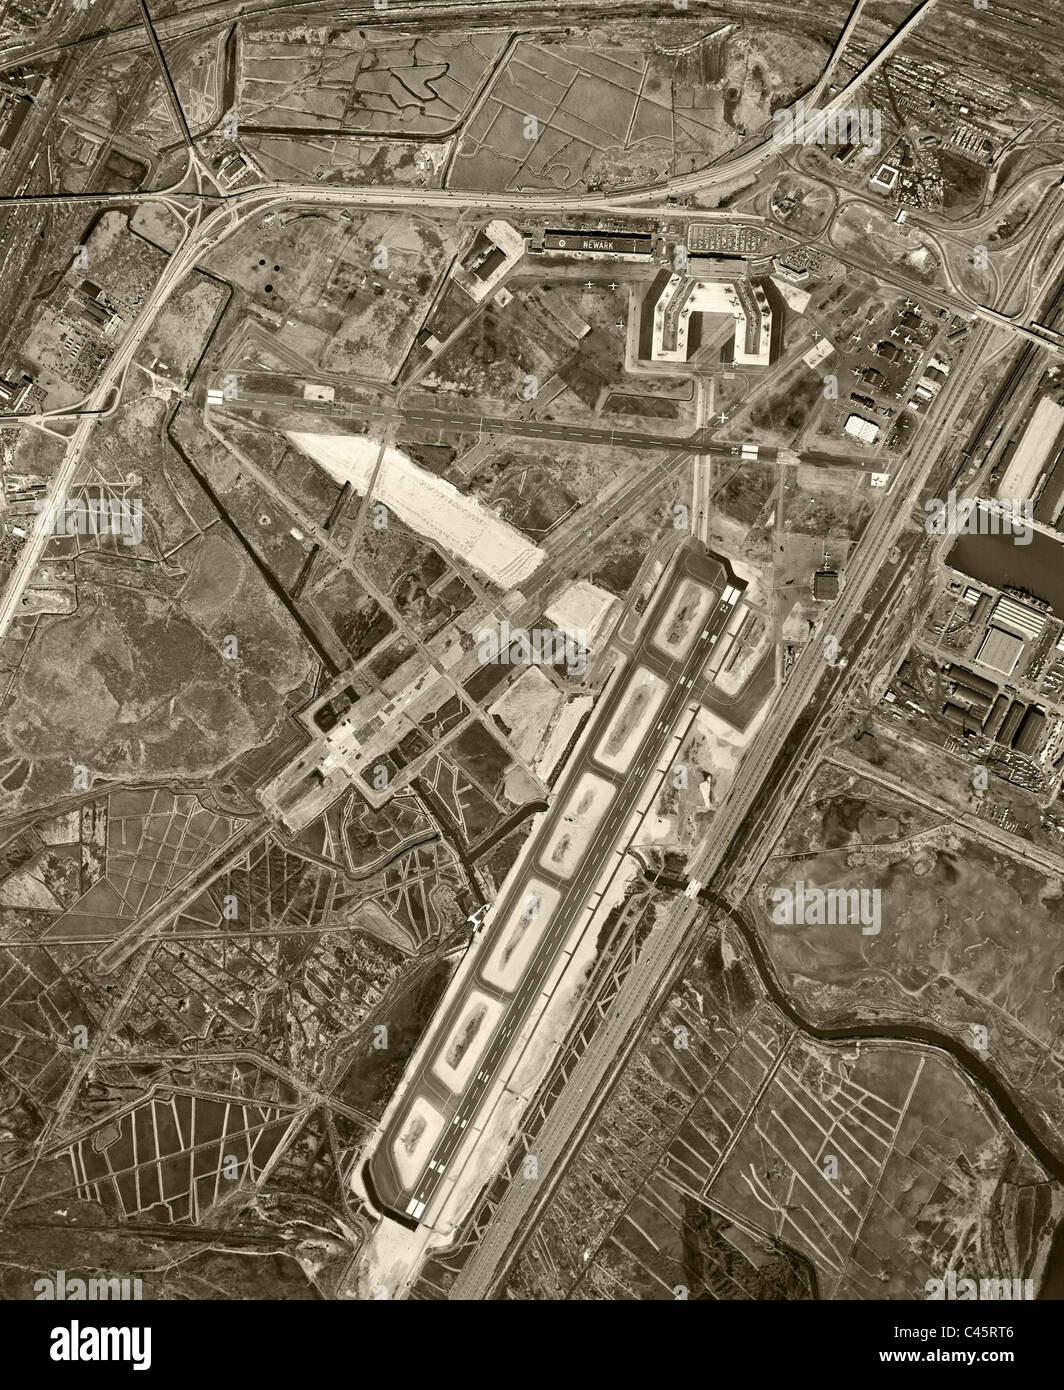 historical aerial photograph Newark airport 1954 - Stock Image